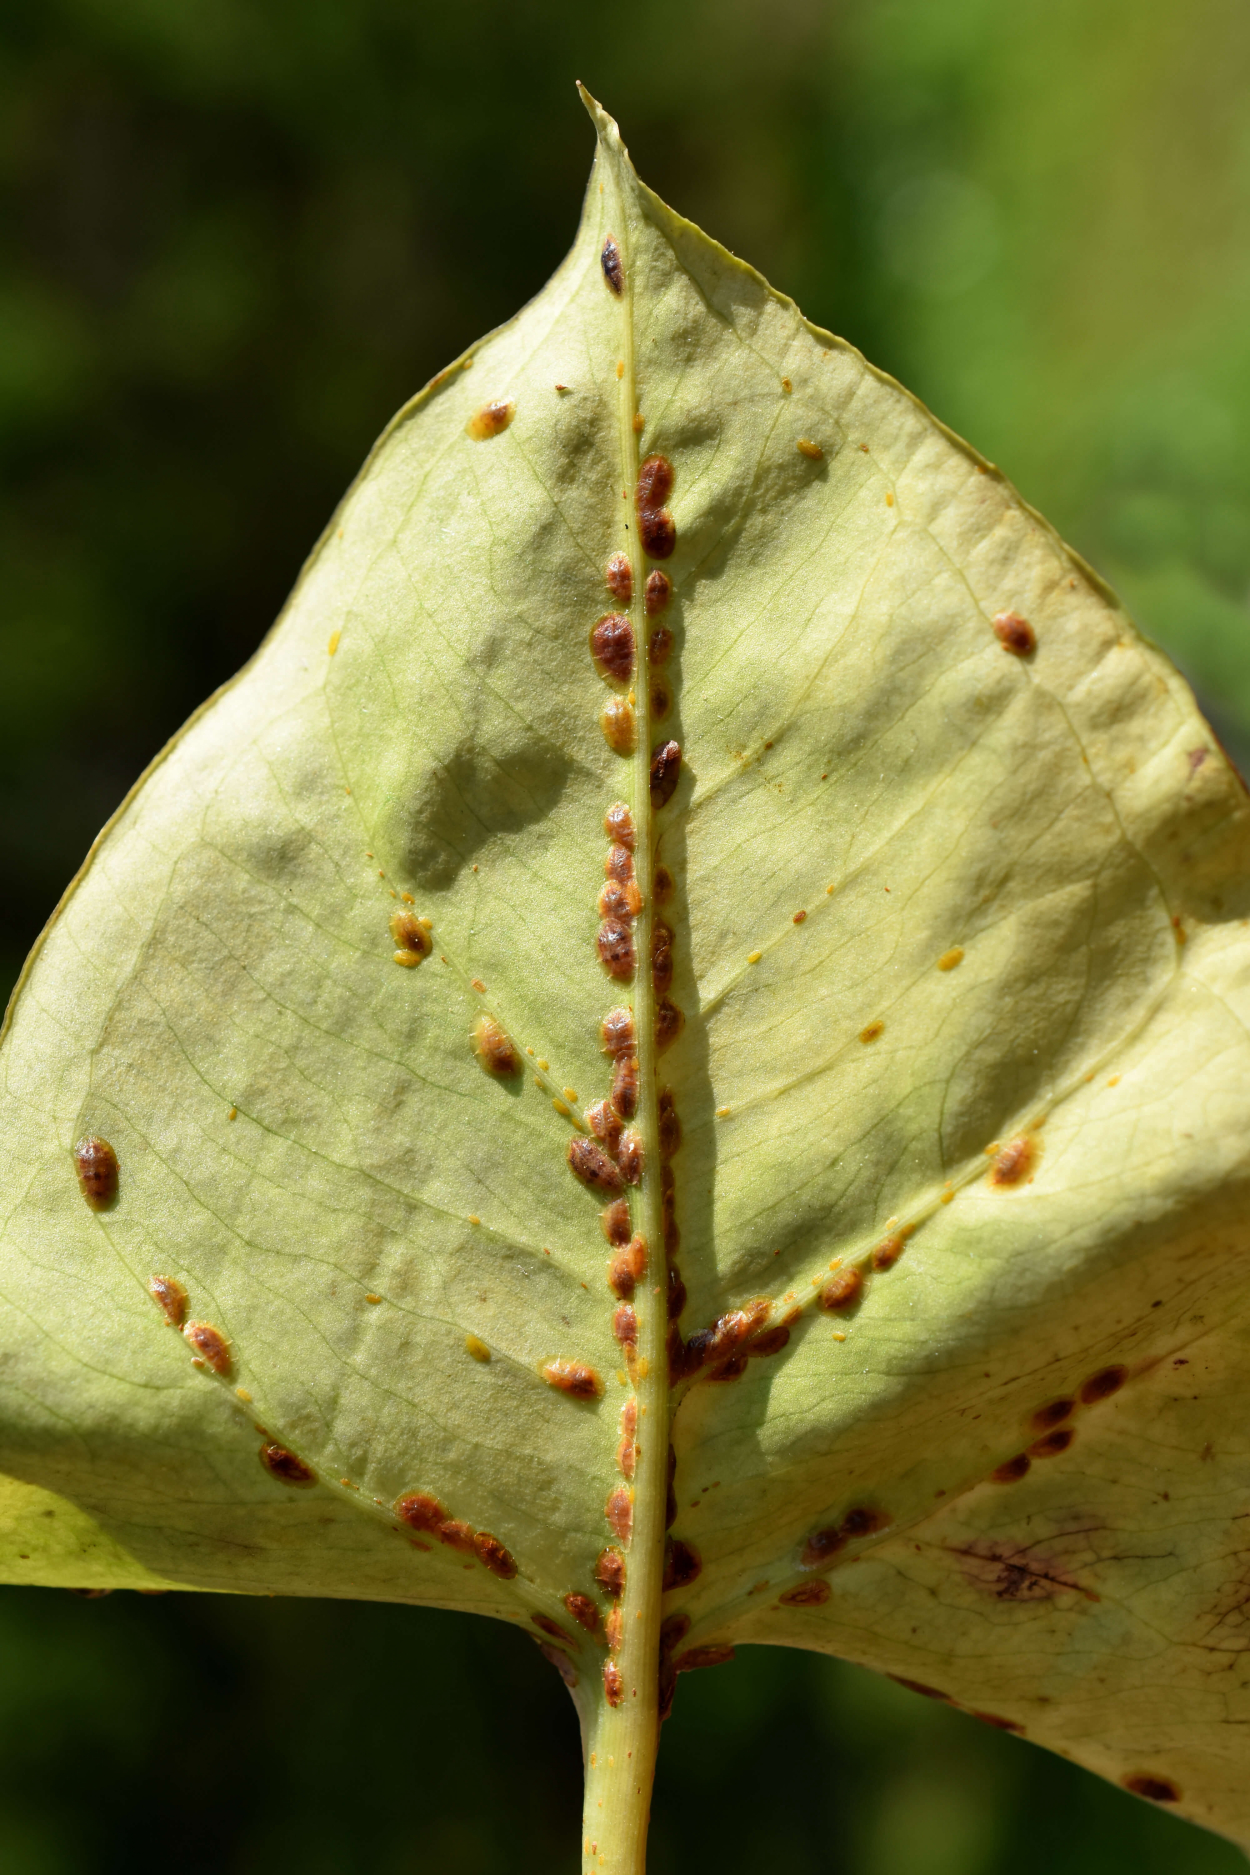 Disease: scale insects